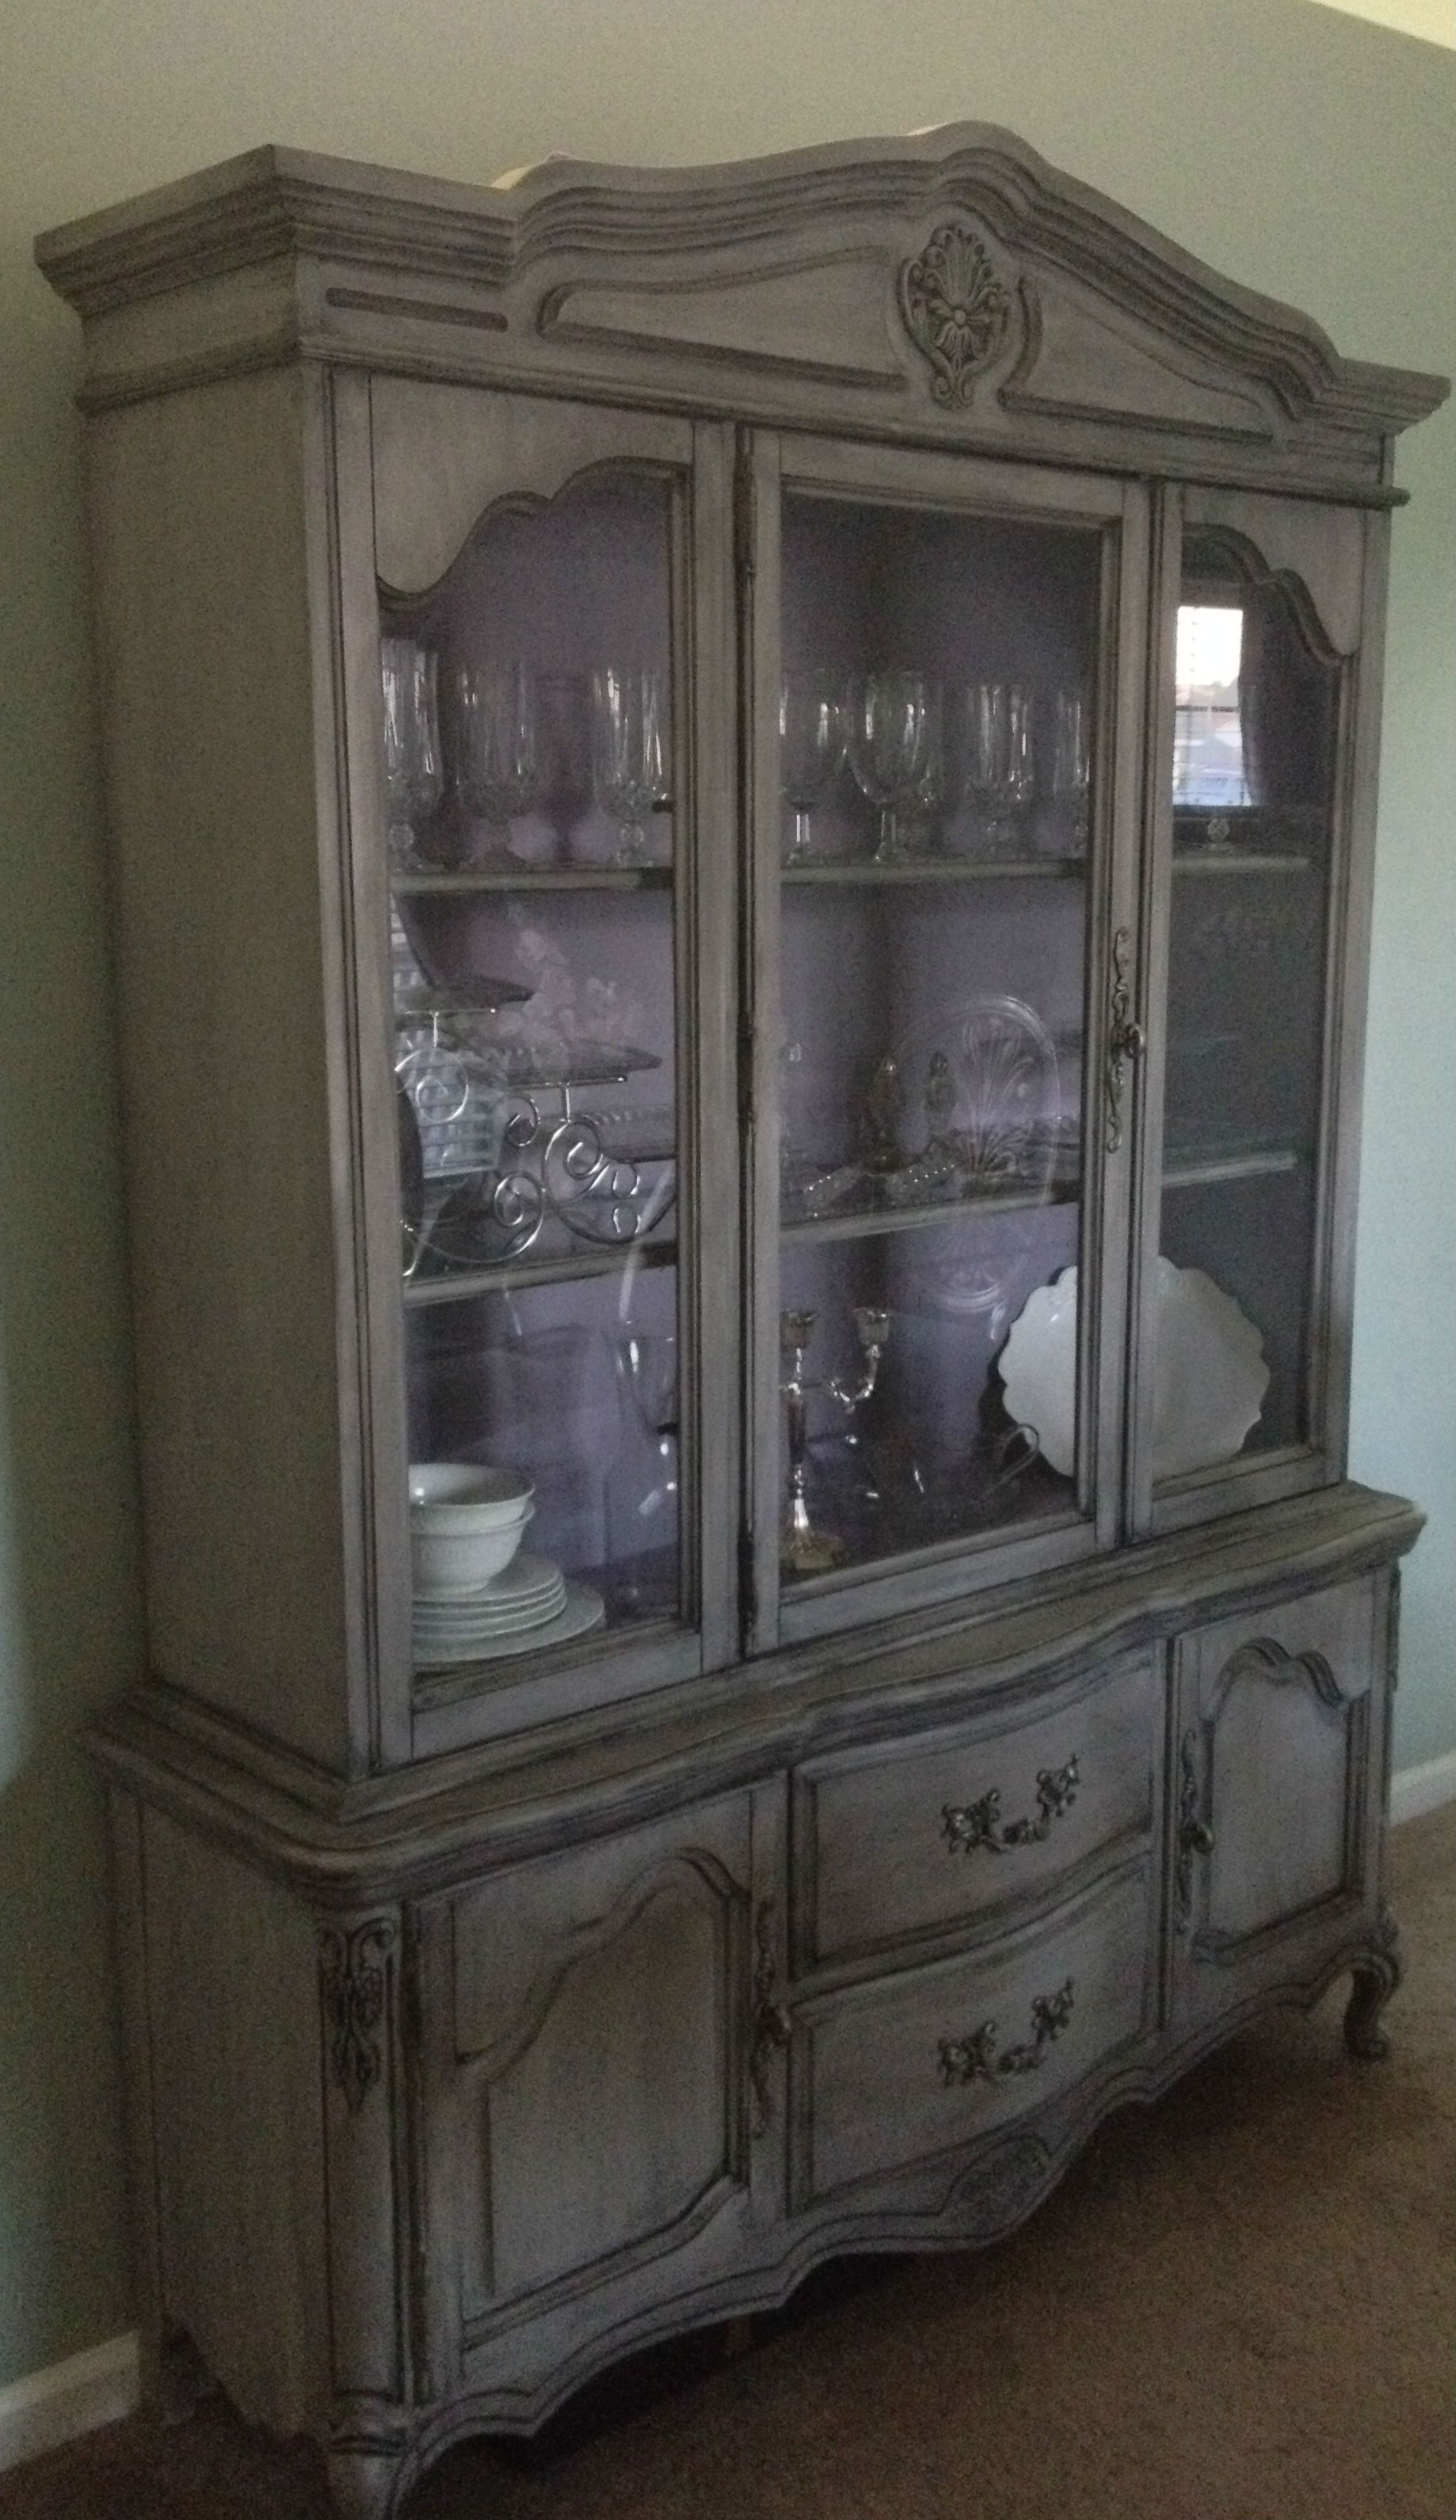 Provincial further grey painted french provincial bedroom furniture - Painted French Provincial China Cabinet Gray And Purple Chalk Paint Homemade Chalk Paint